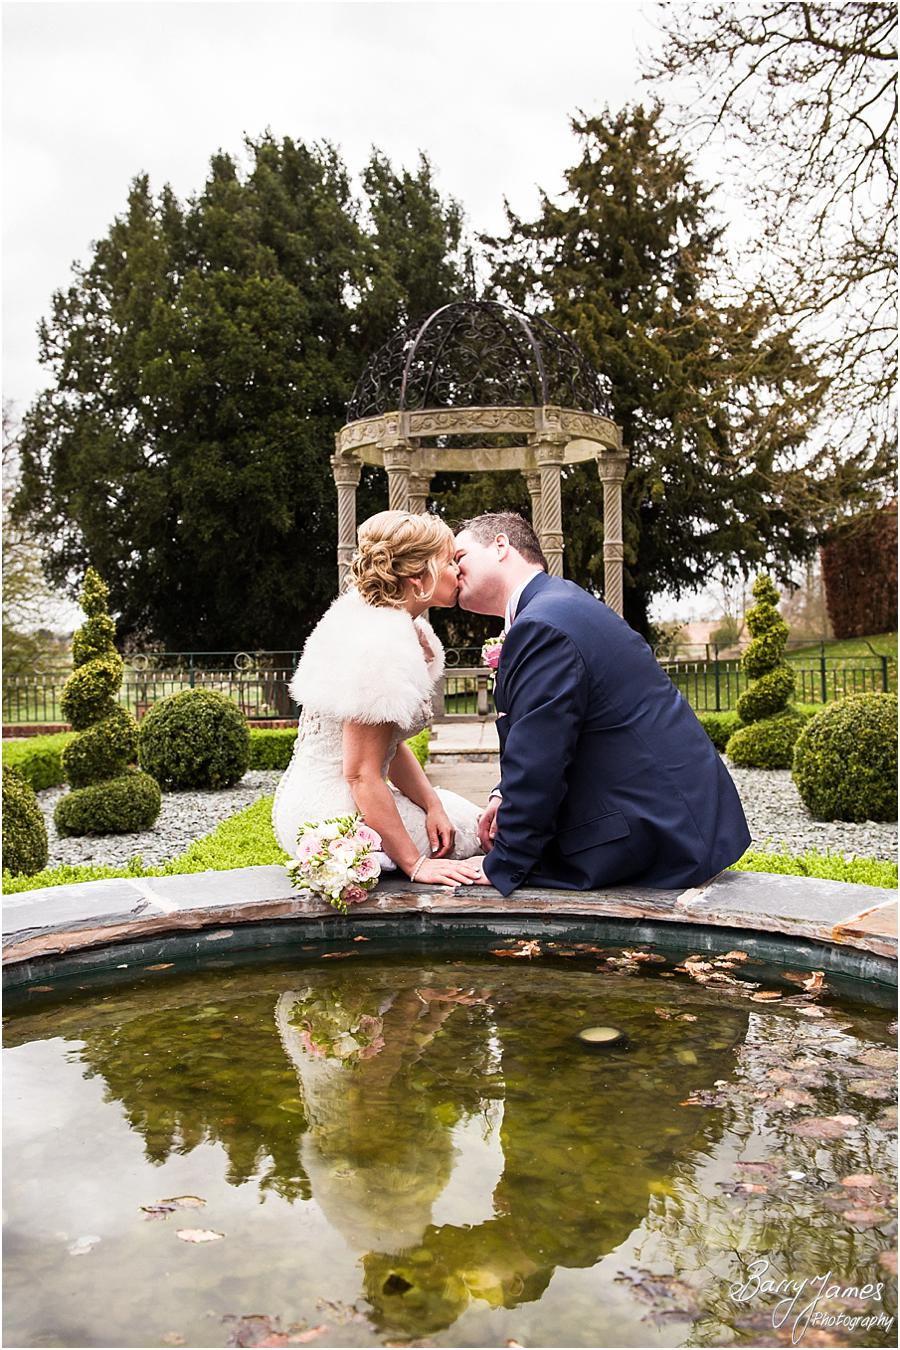 Natural contemporary portraits utilising the beautiful setting at Weston Hall in Stafford by Stafford Wedding Photographer Barry James